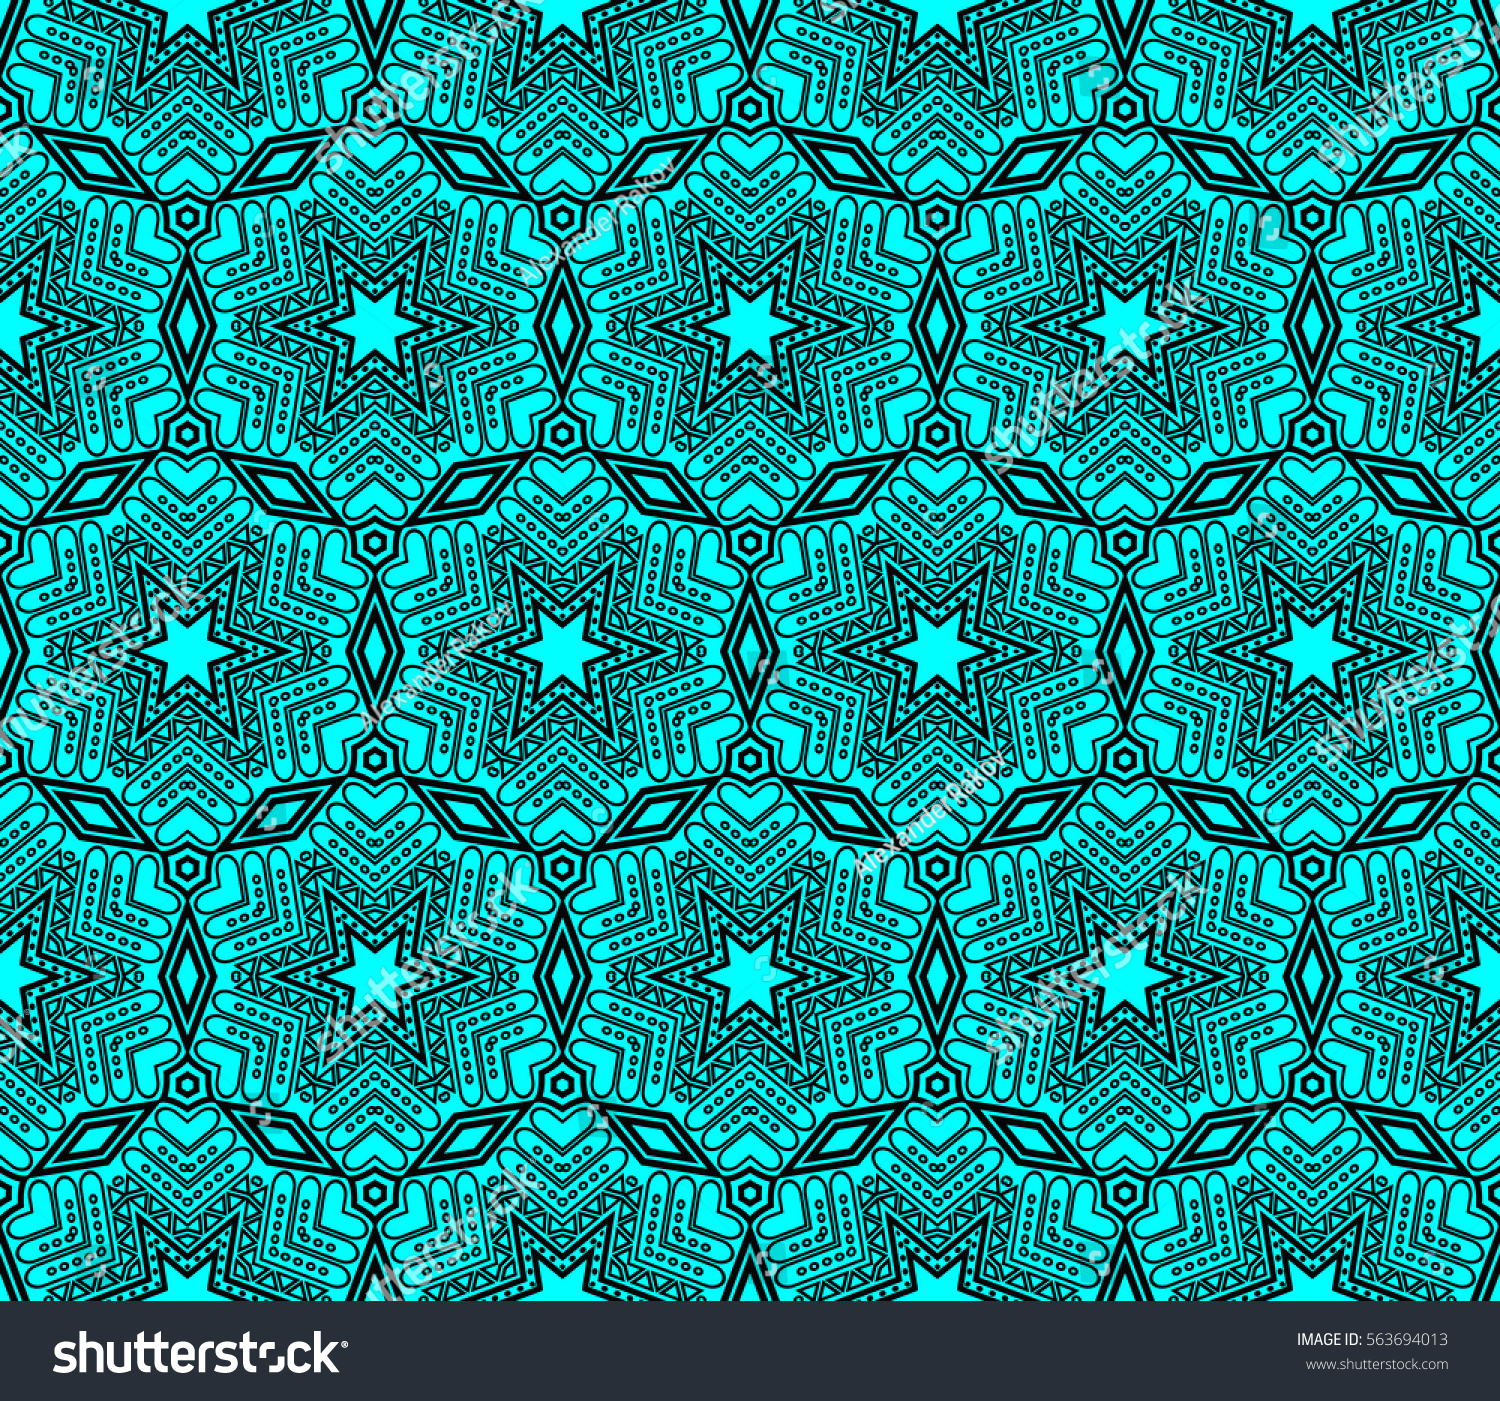 Modern geometric seamless pattern For design page fill wallpaper Raster copy illustration